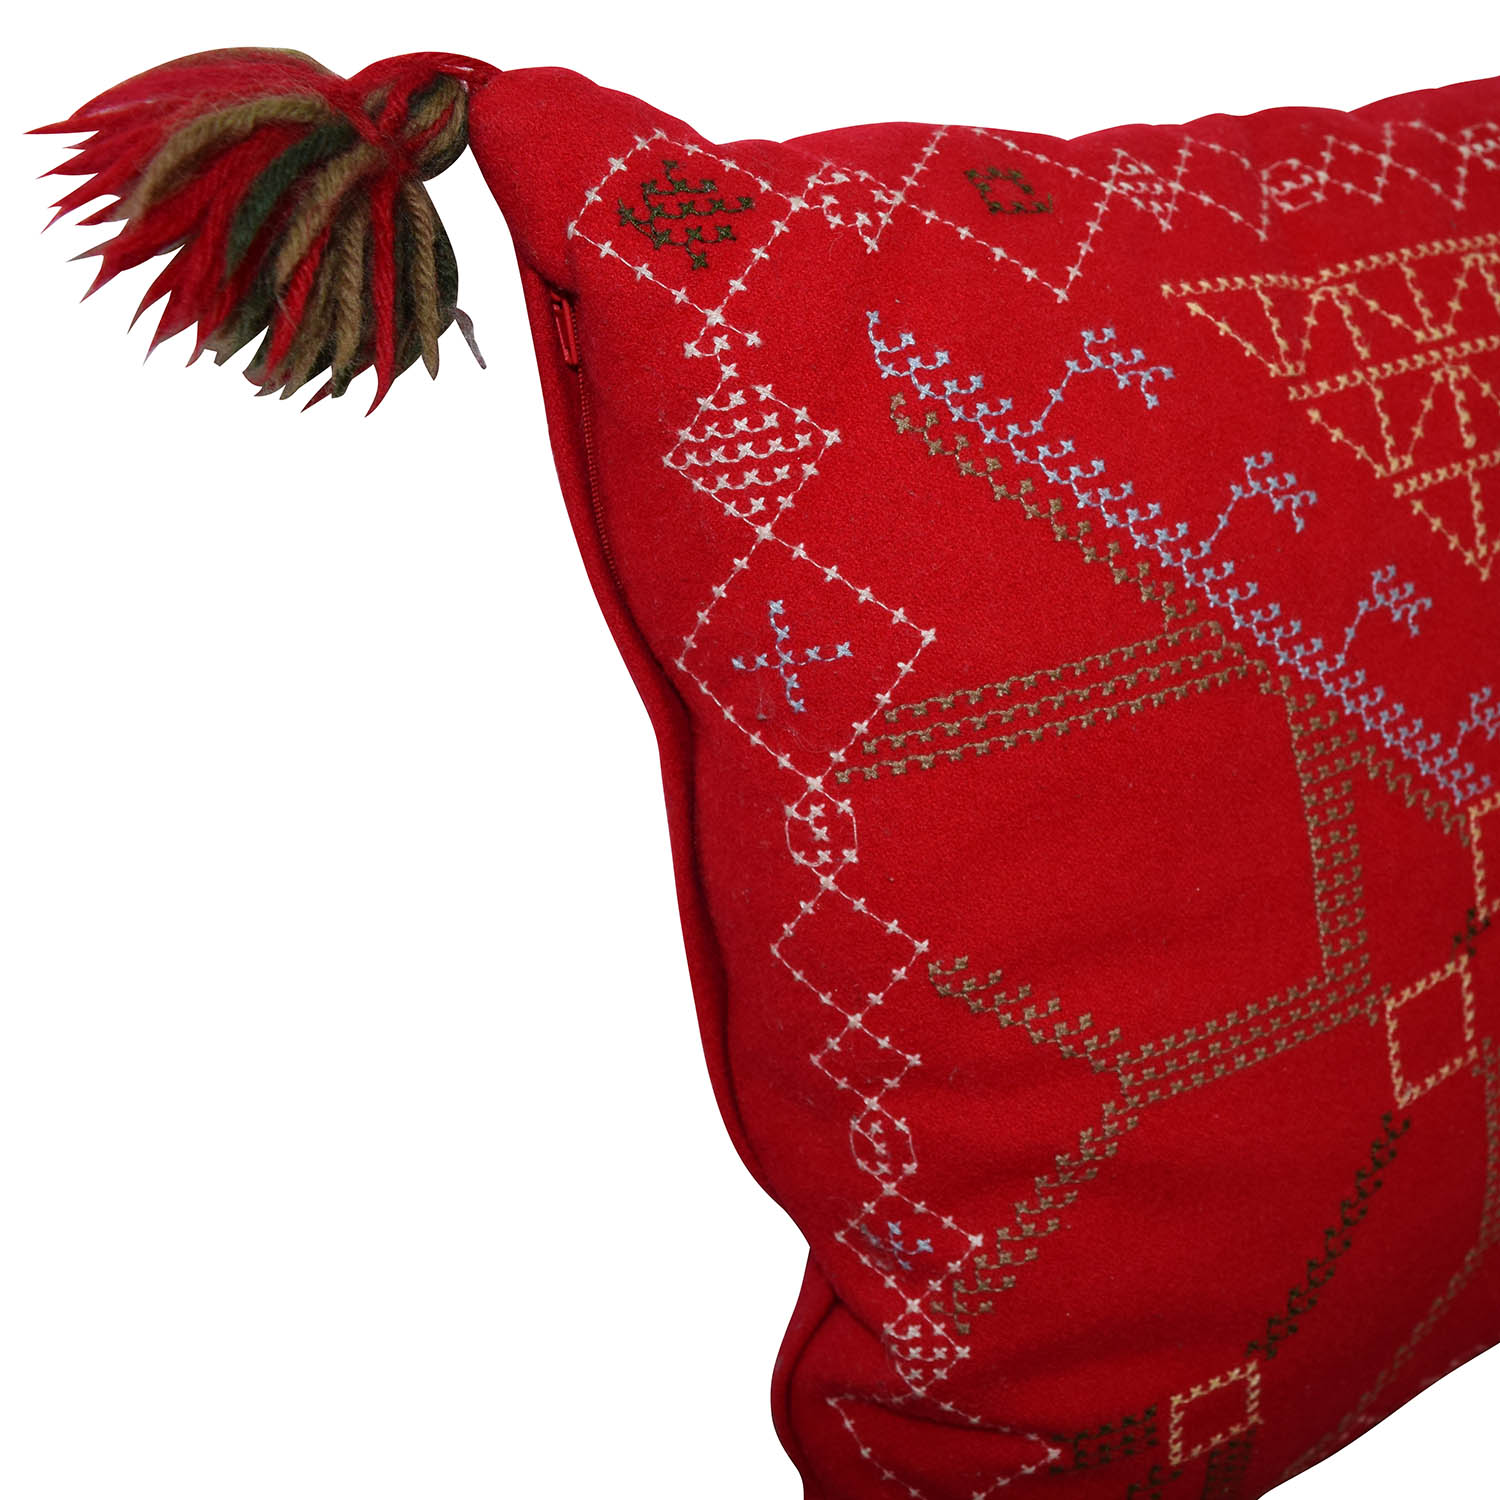 buy Red Decorative Toss Pillows Decorative Accents